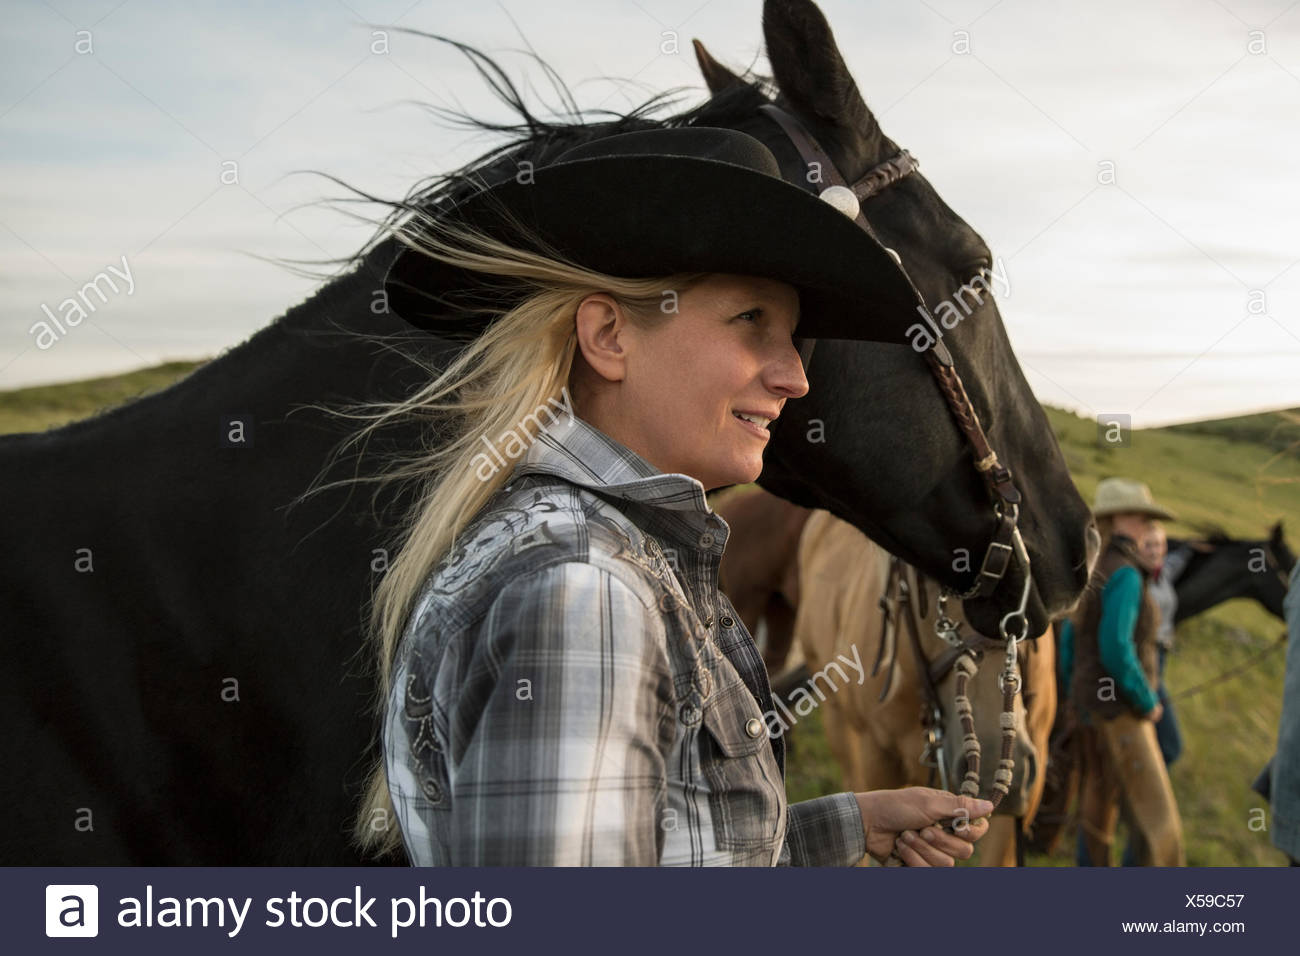 Female rancher with horse looking away - Stock Image